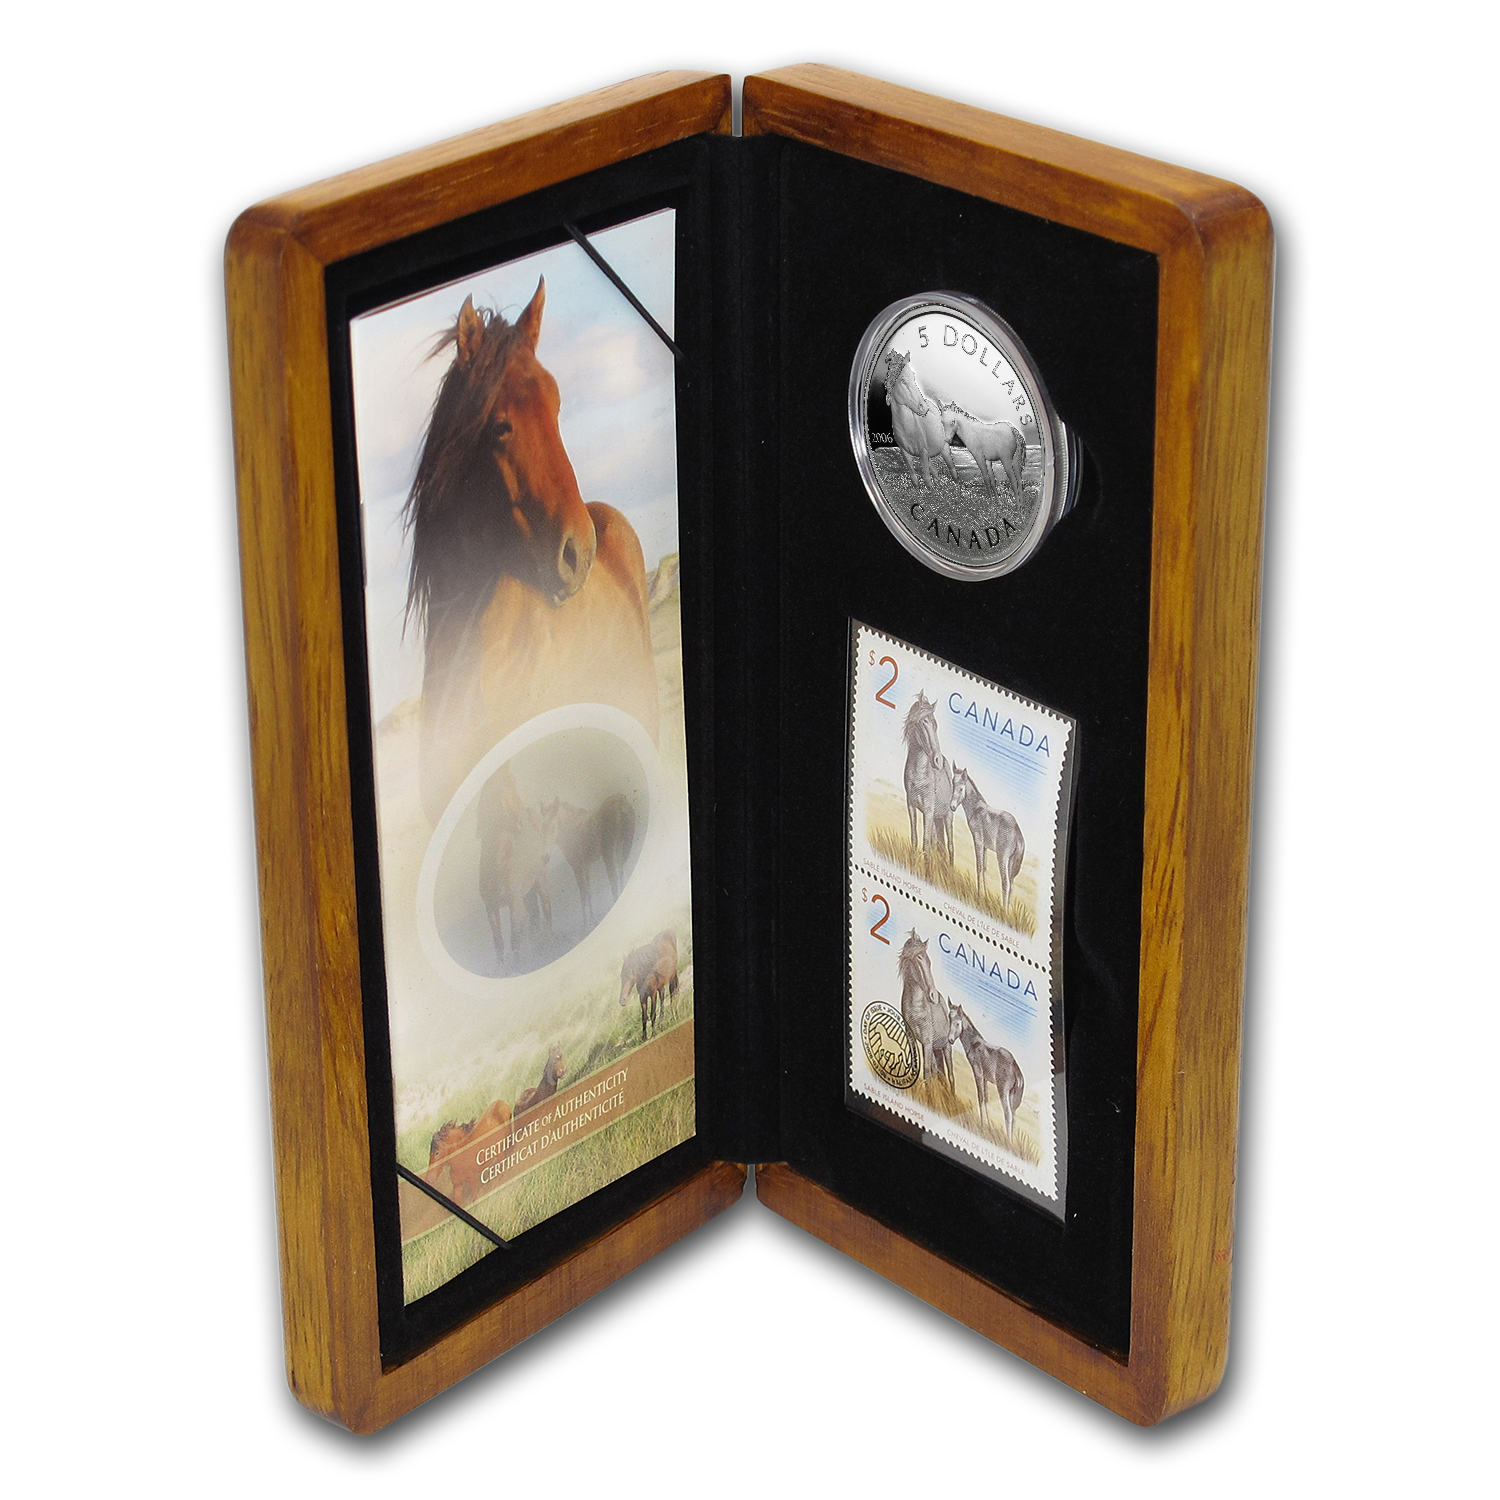 2006 Canada 1 oz Silver Sable Horse & Foal Coin & Stamp Set